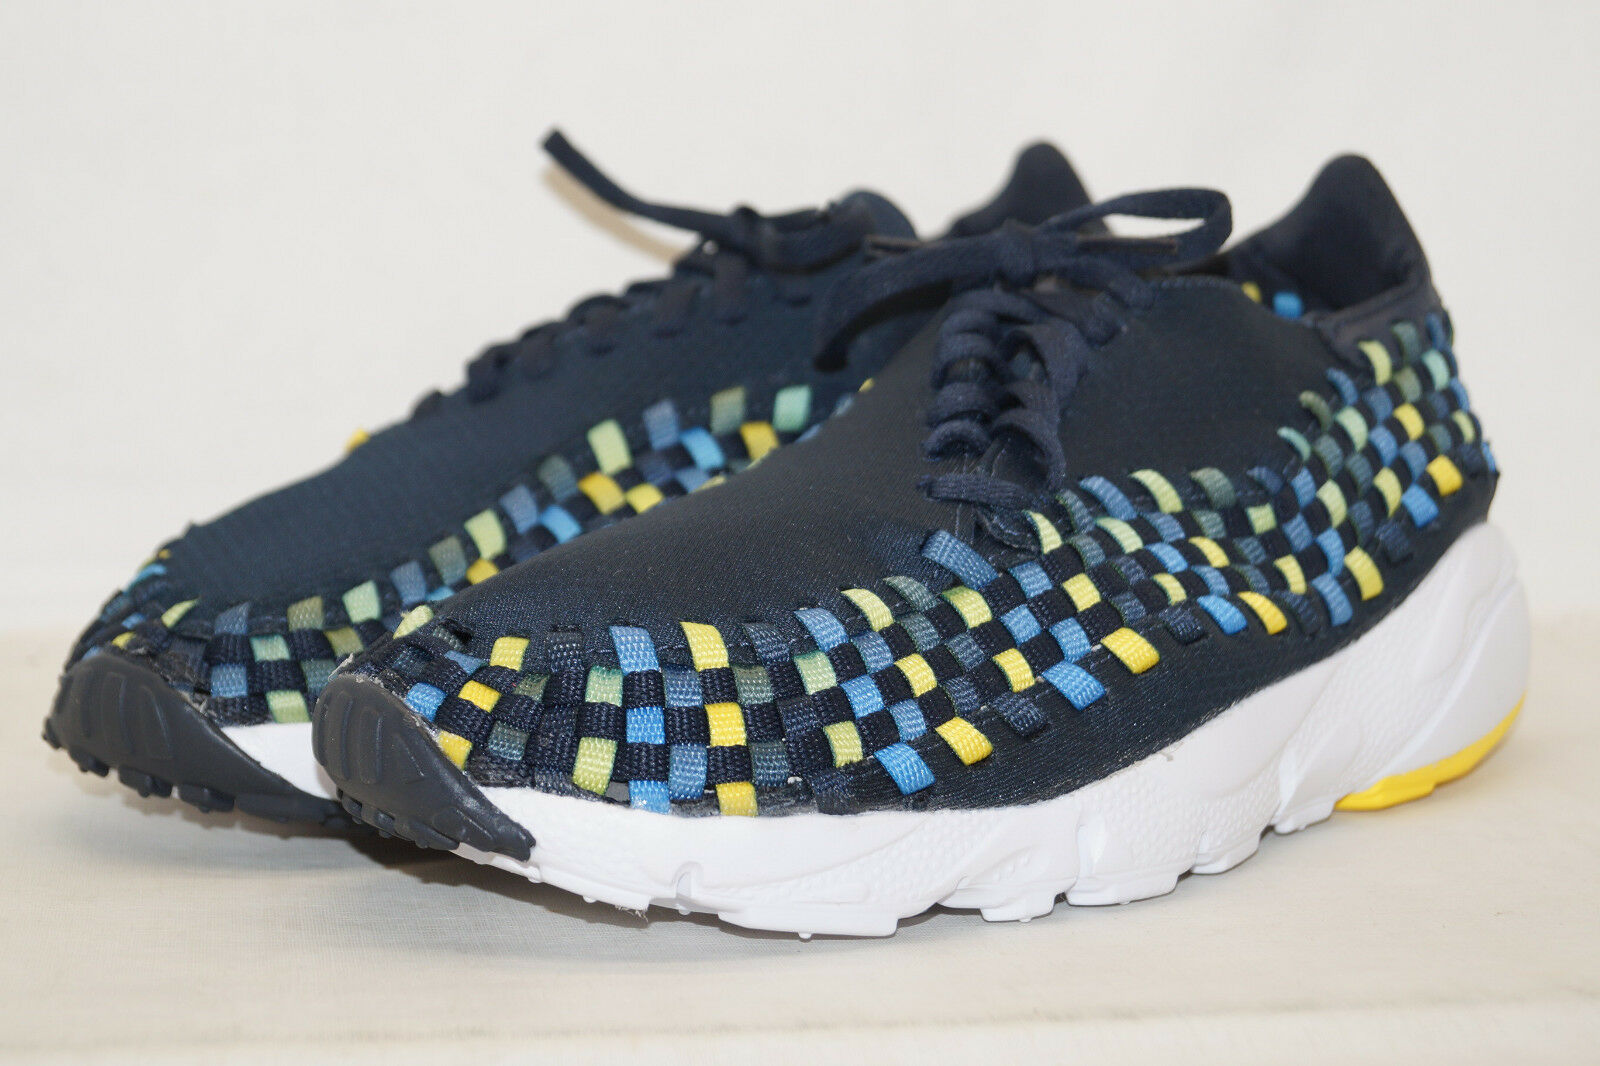 NIKE AIR FOOTSCAPE WOVEN NM CHUKKA schwarz multicolor 875797 401